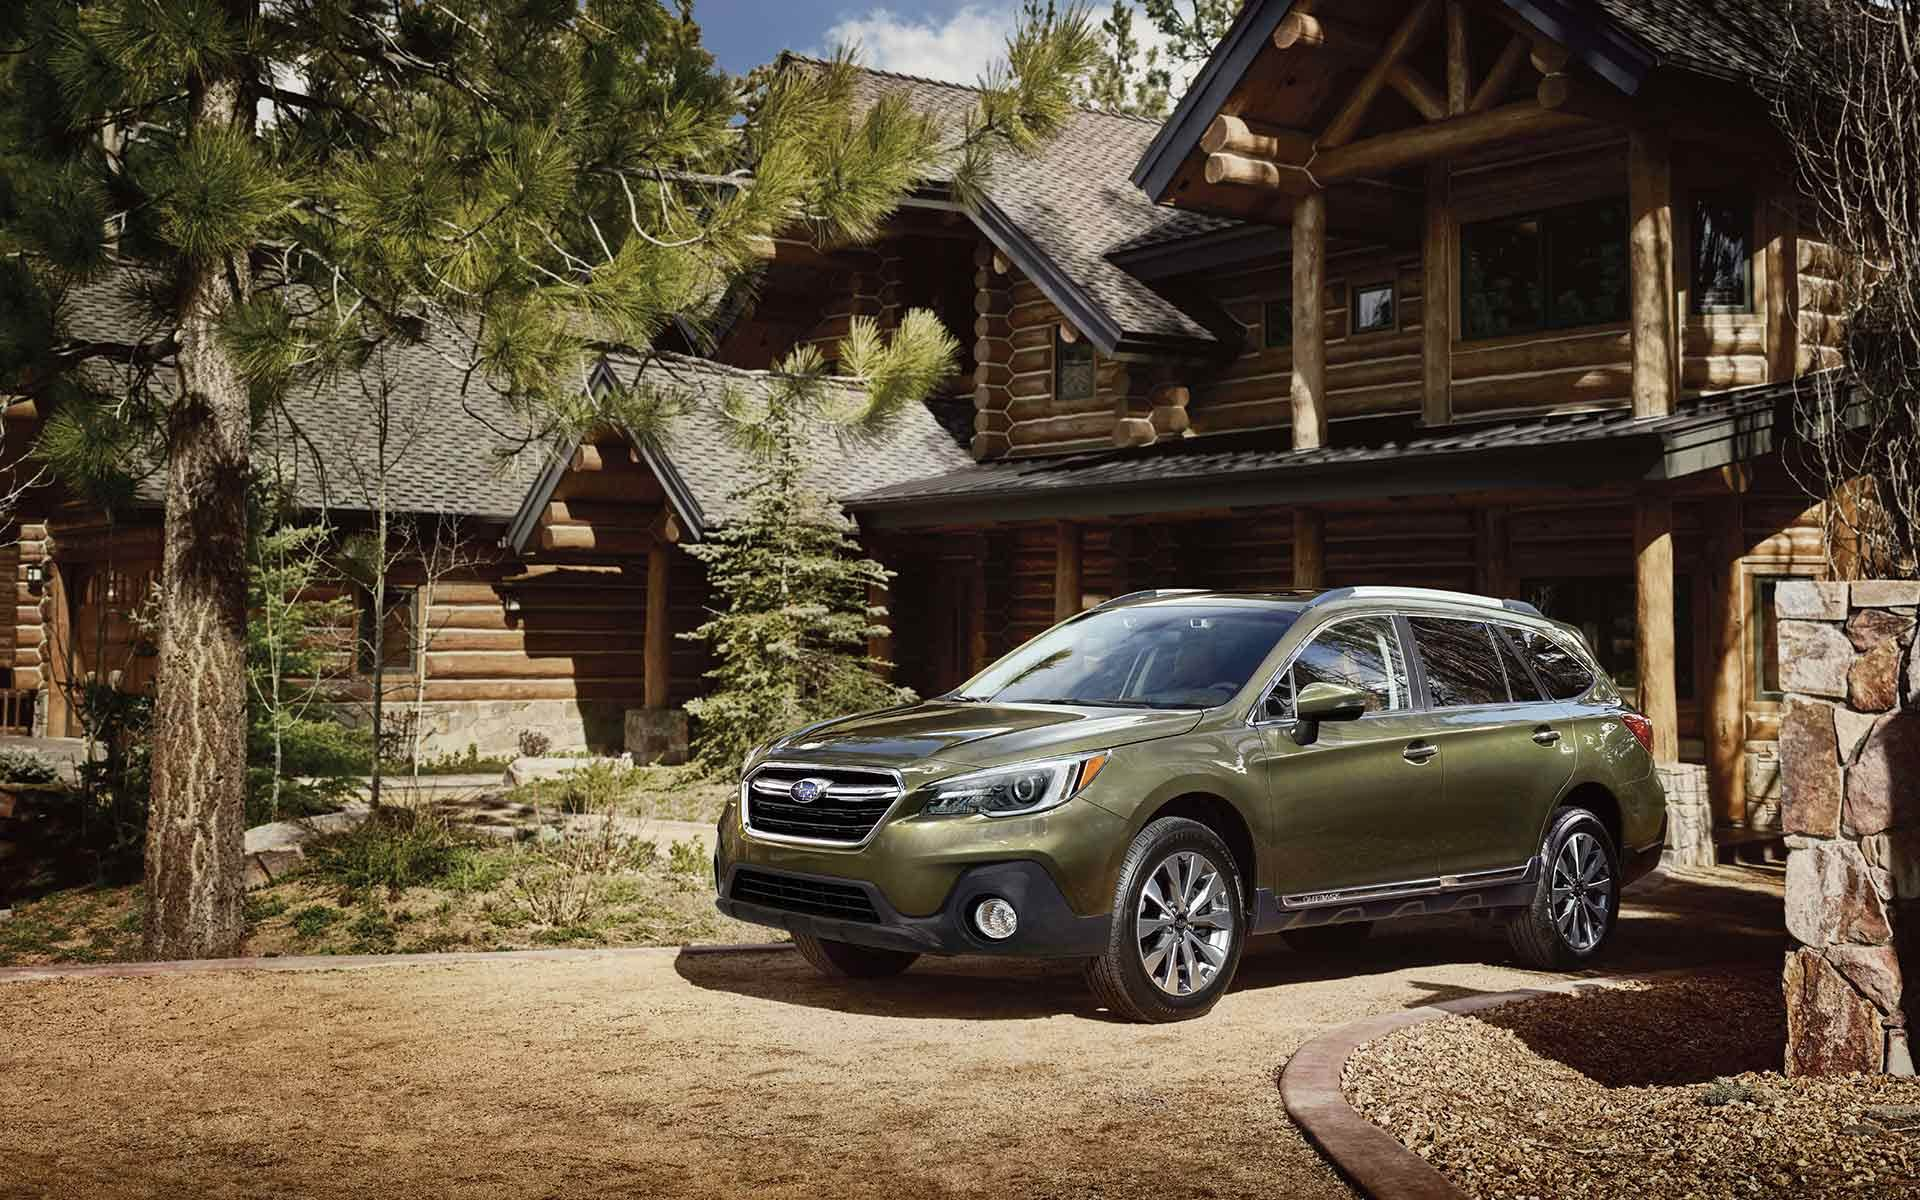 2019 Subaru Outback Green Front Exterior